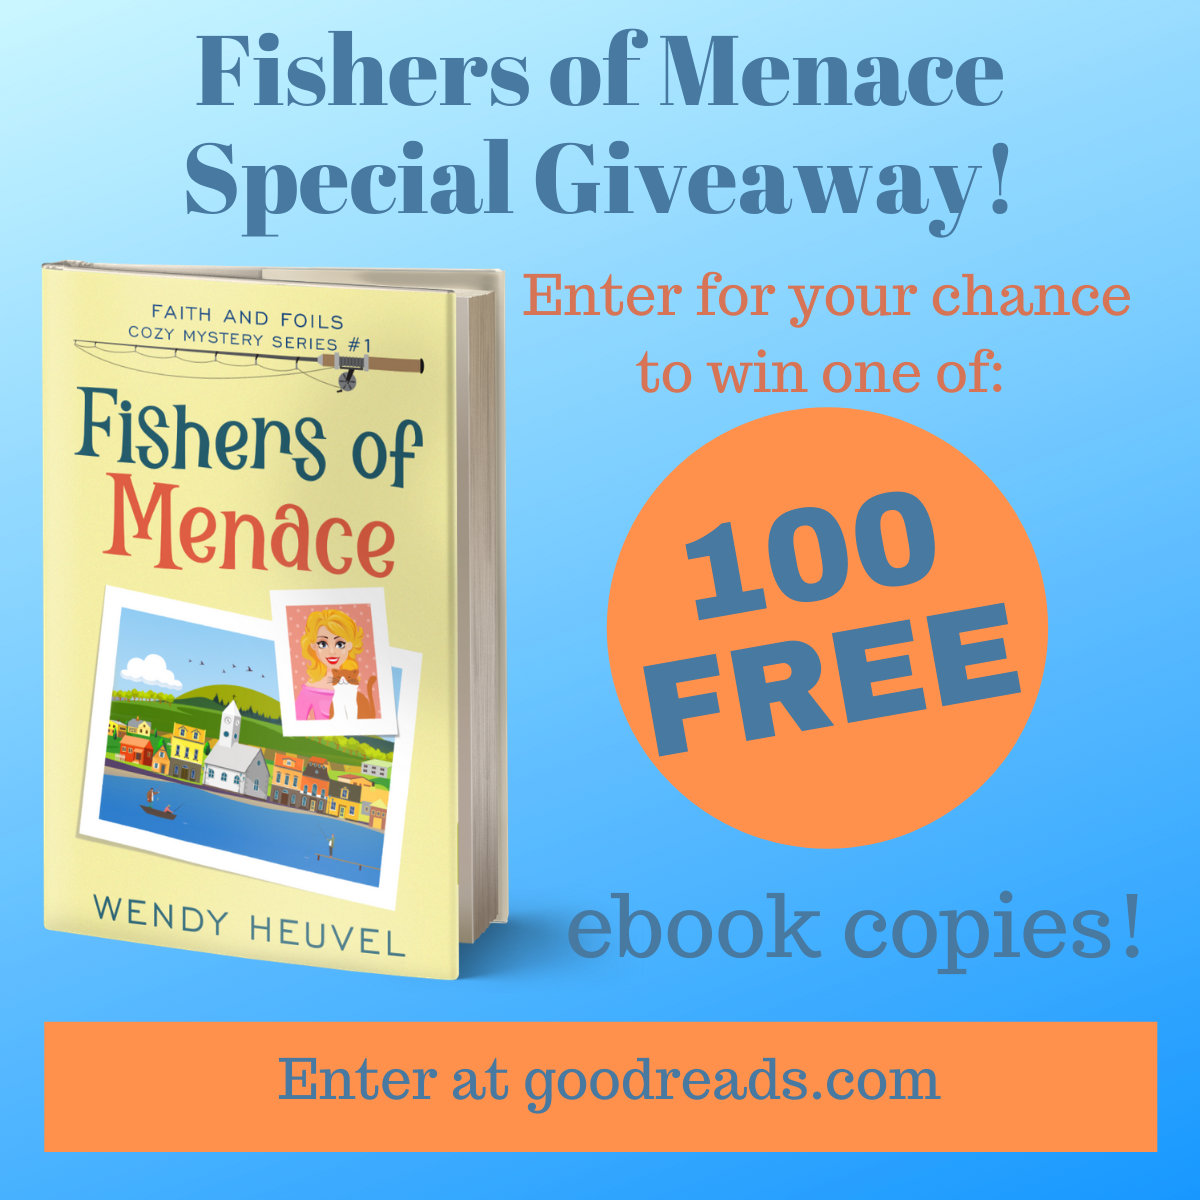 100 Copies of Fishers of Menace Available in this Goodreads Giveaway!